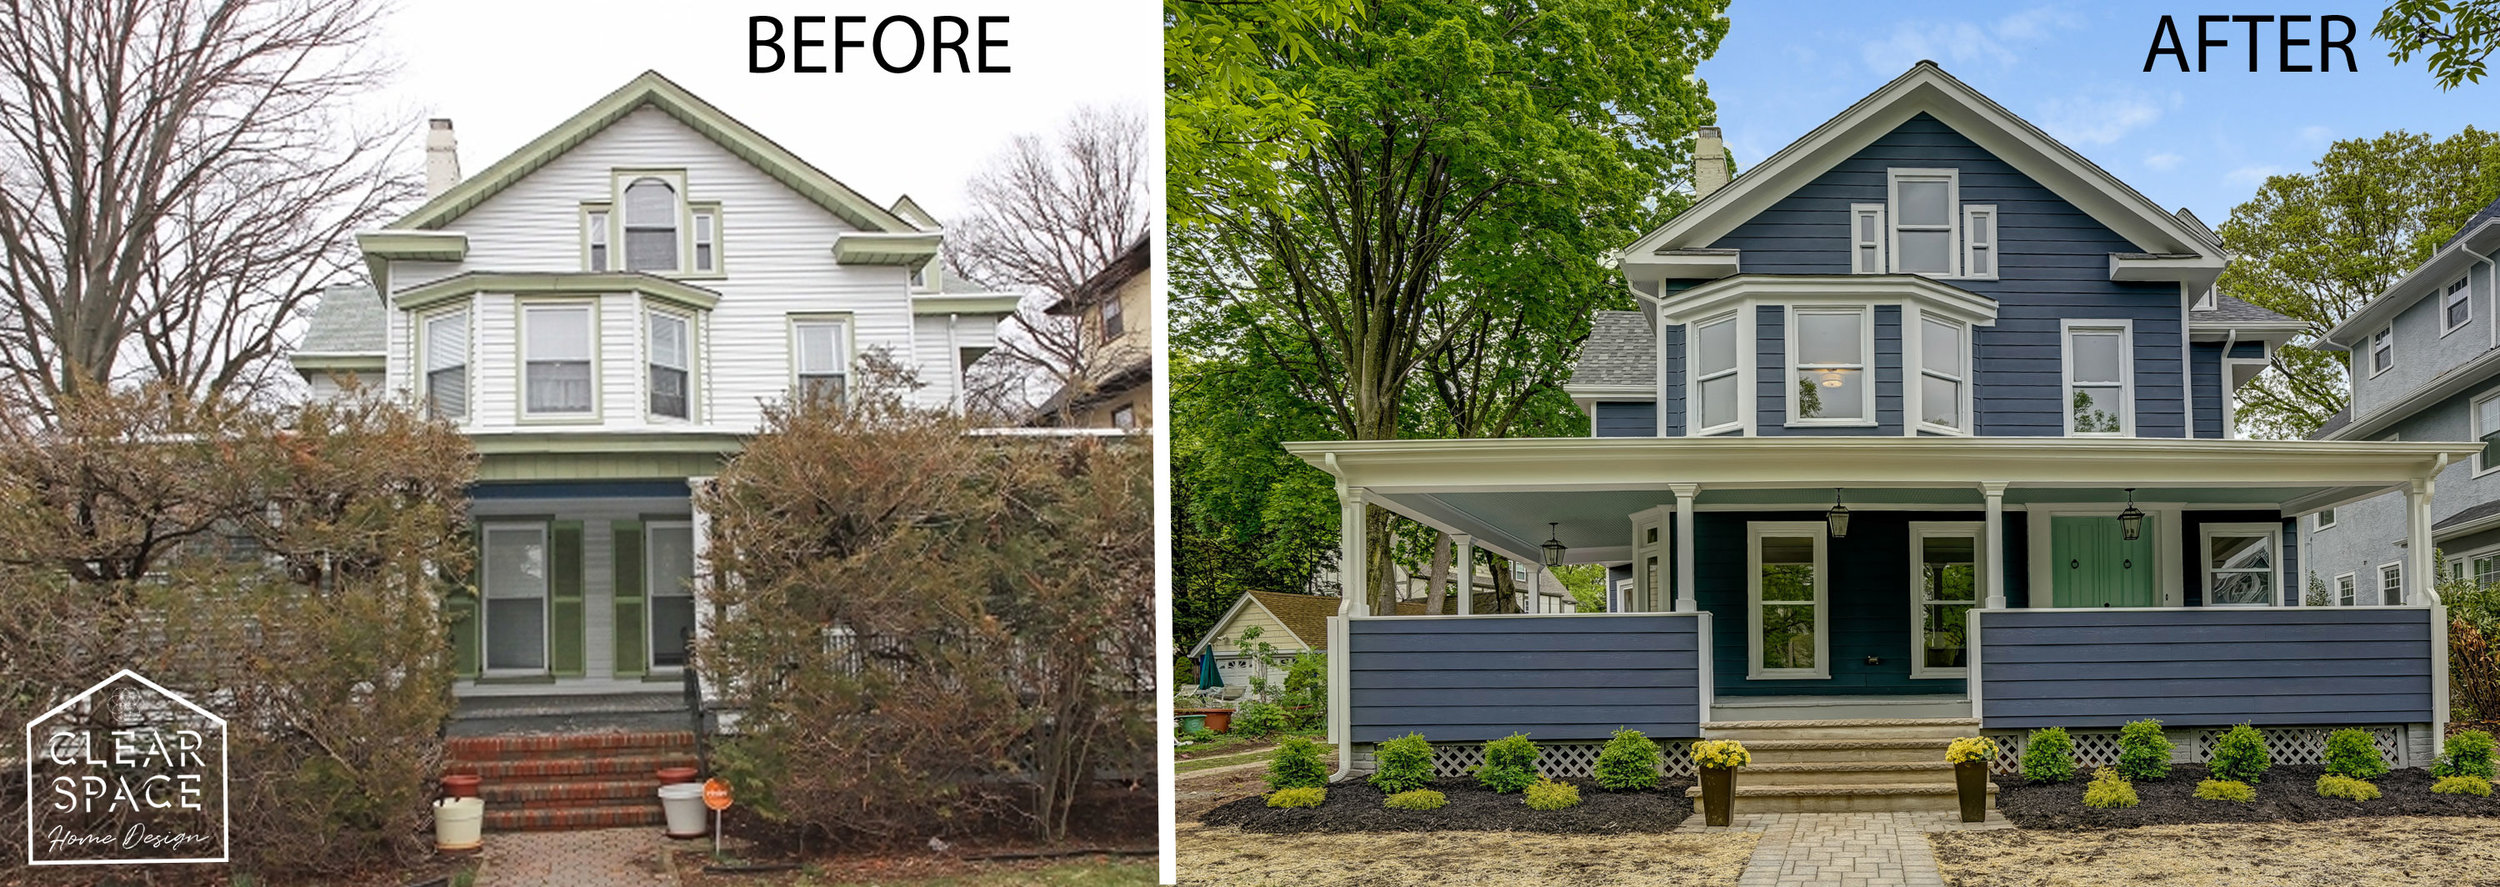 The dumpy multi-family gets a serious makeover with dark blue Hardie board siding. We've gotten many compliments on the bold color choice!